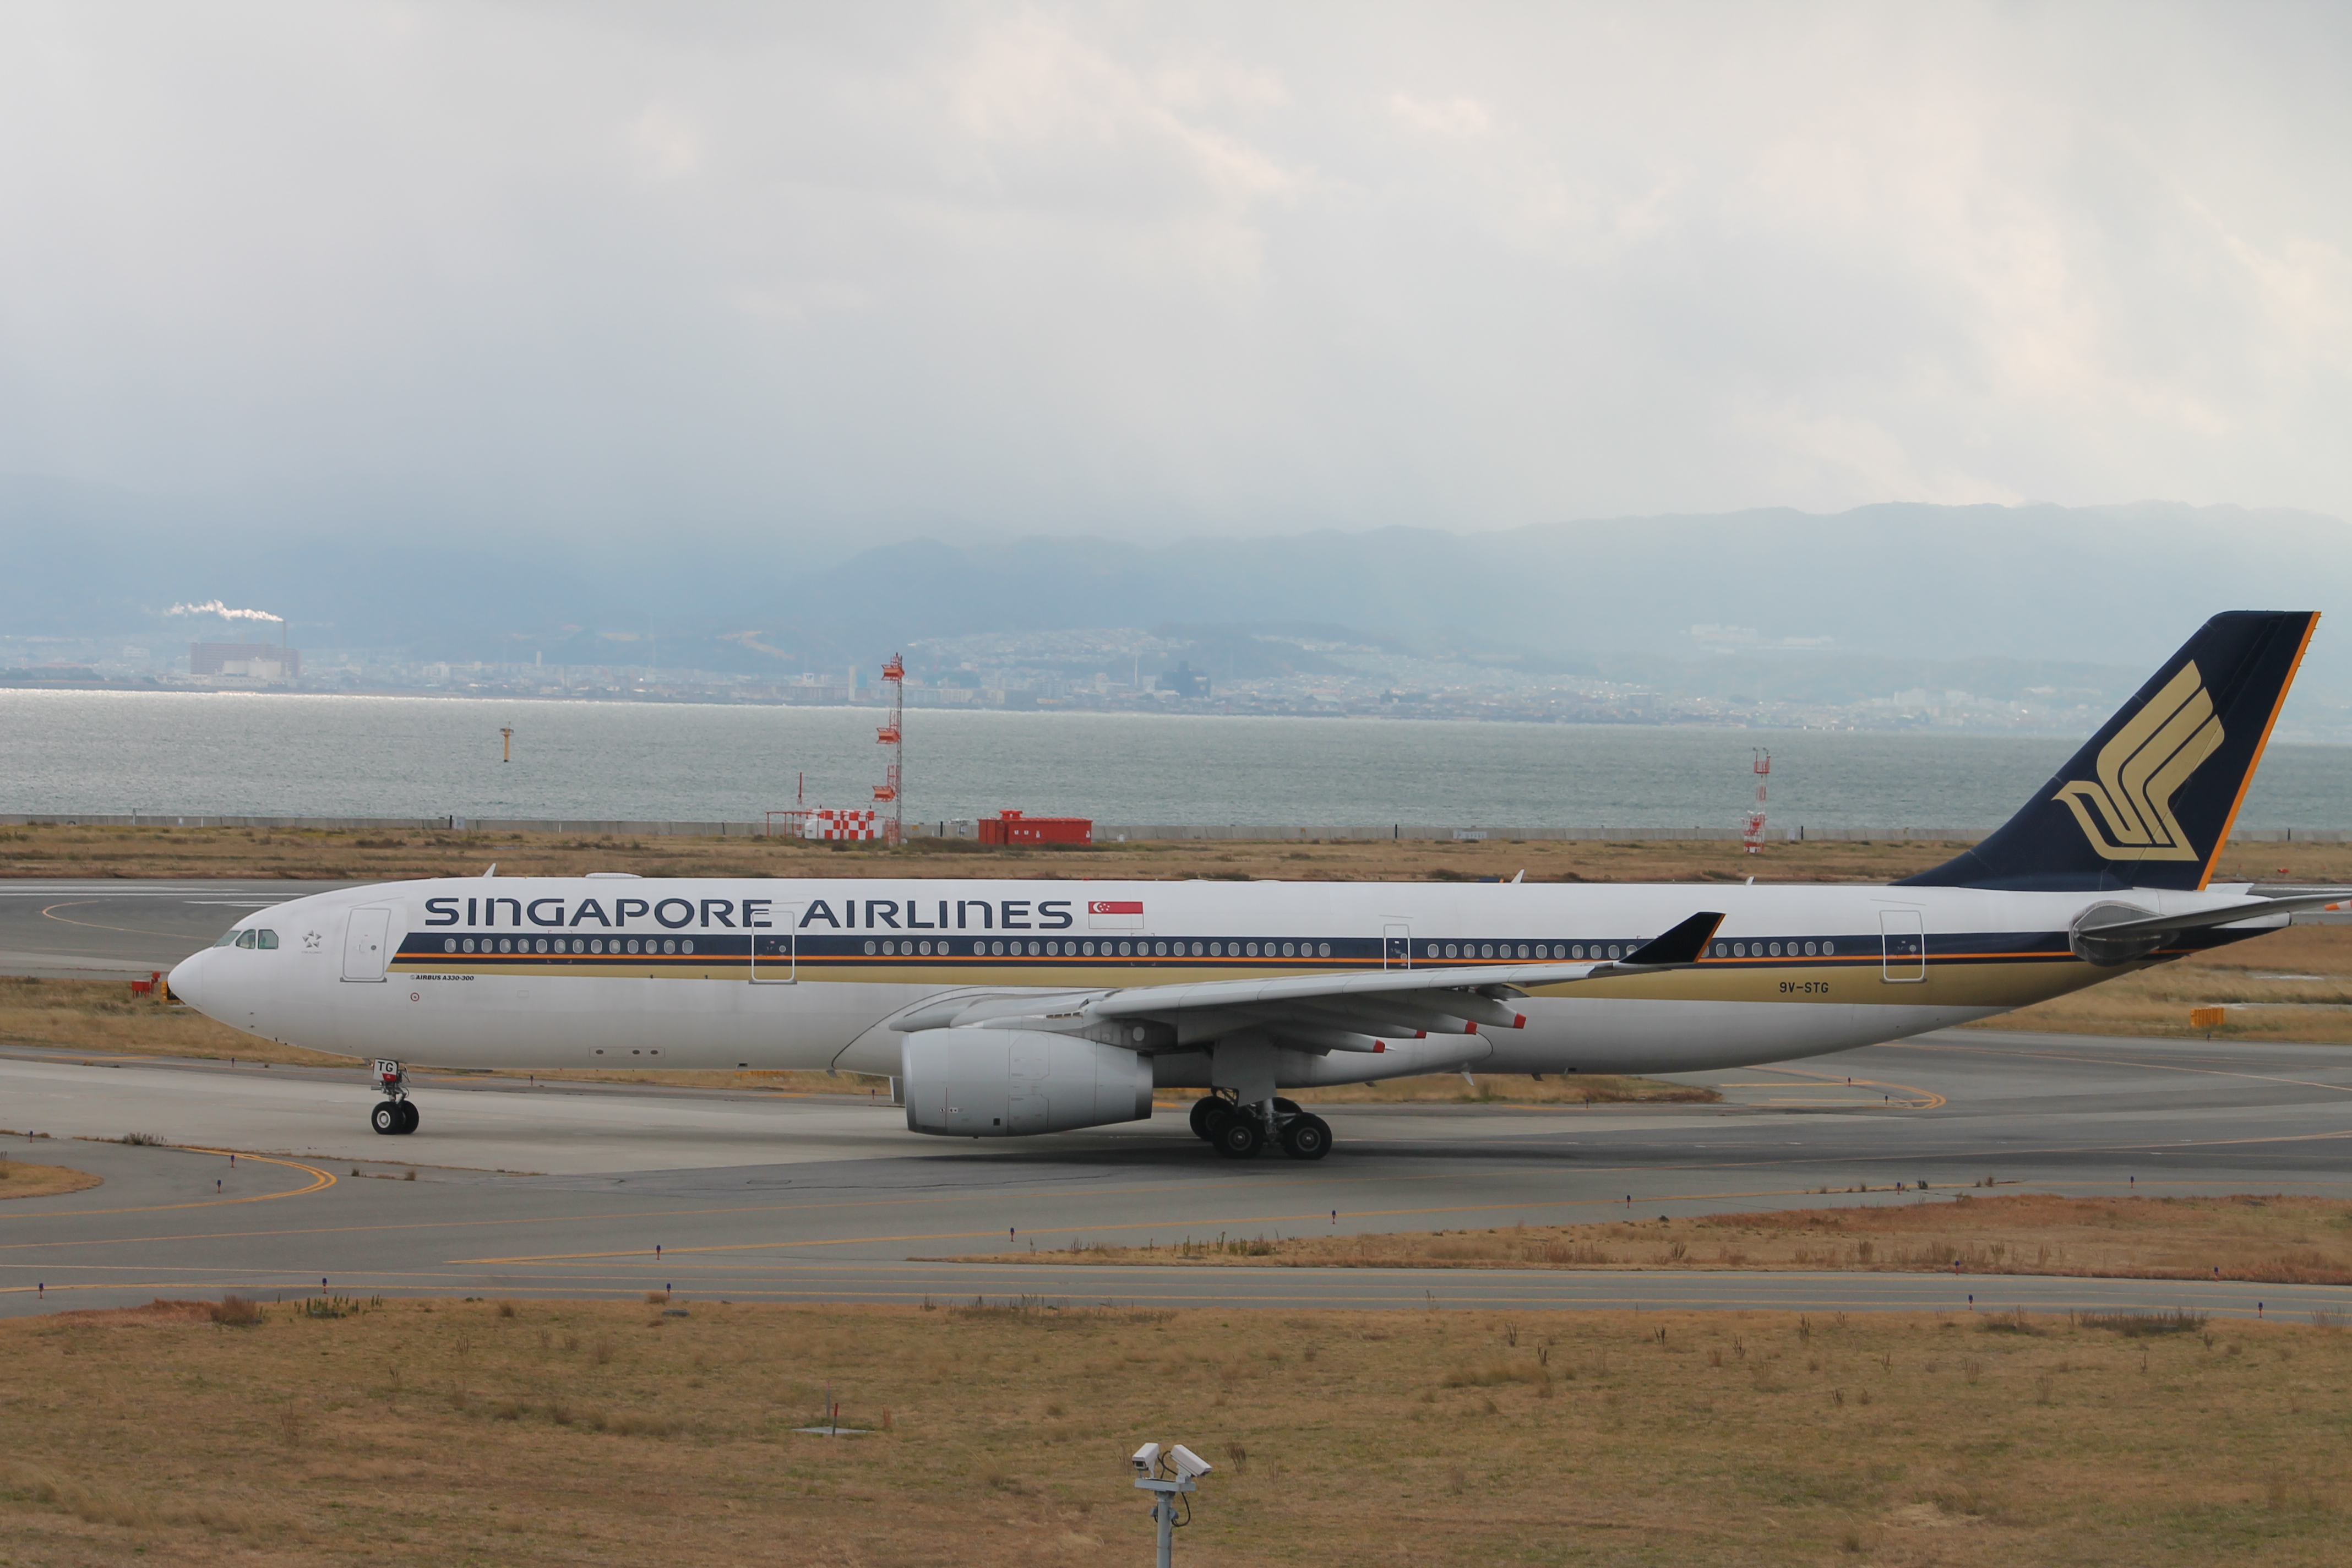 Singapore_Airlines_Airbus-A330-343.jpg